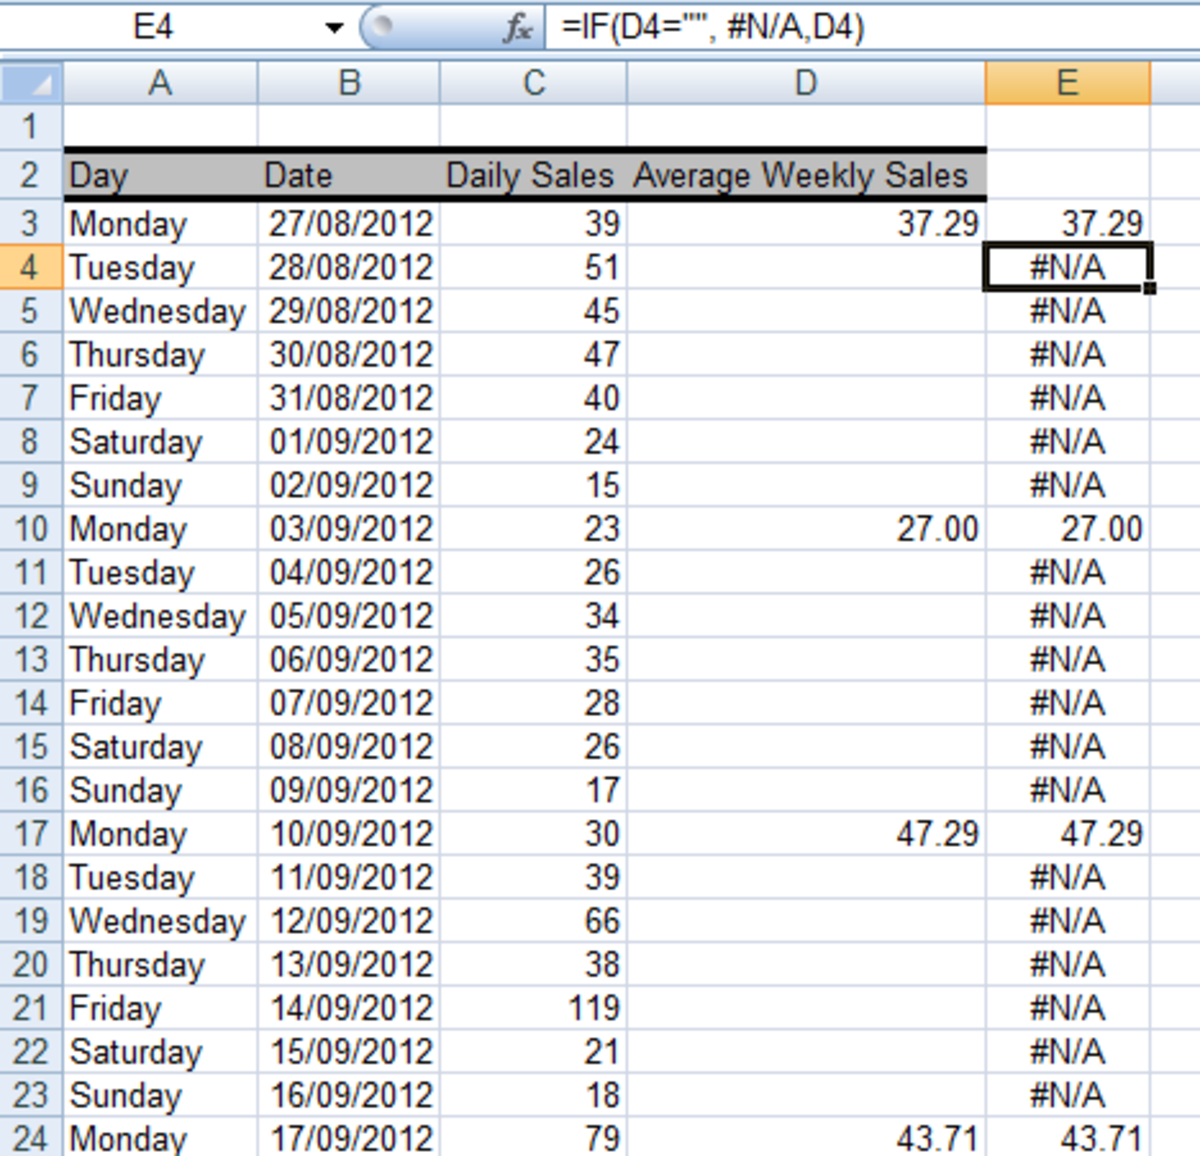 Ediblewildsus  Prepossessing How To Get Excel  And  To Ignore Empty Cells In A Chart Or  With Licious Using The If Function In A Formula To Convert Empty Cells To Na With Archaic Hp Qc Excel Add In Also Excel Interest Rate Calculator In Addition Free Online Excel Tutorials And Make A Pie Chart Excel As Well As Excel Spreadsheet To Mailing Labels Additionally Microsoft Excel Autofit From Turbofuturecom With Ediblewildsus  Licious How To Get Excel  And  To Ignore Empty Cells In A Chart Or  With Archaic Using The If Function In A Formula To Convert Empty Cells To Na And Prepossessing Hp Qc Excel Add In Also Excel Interest Rate Calculator In Addition Free Online Excel Tutorials From Turbofuturecom